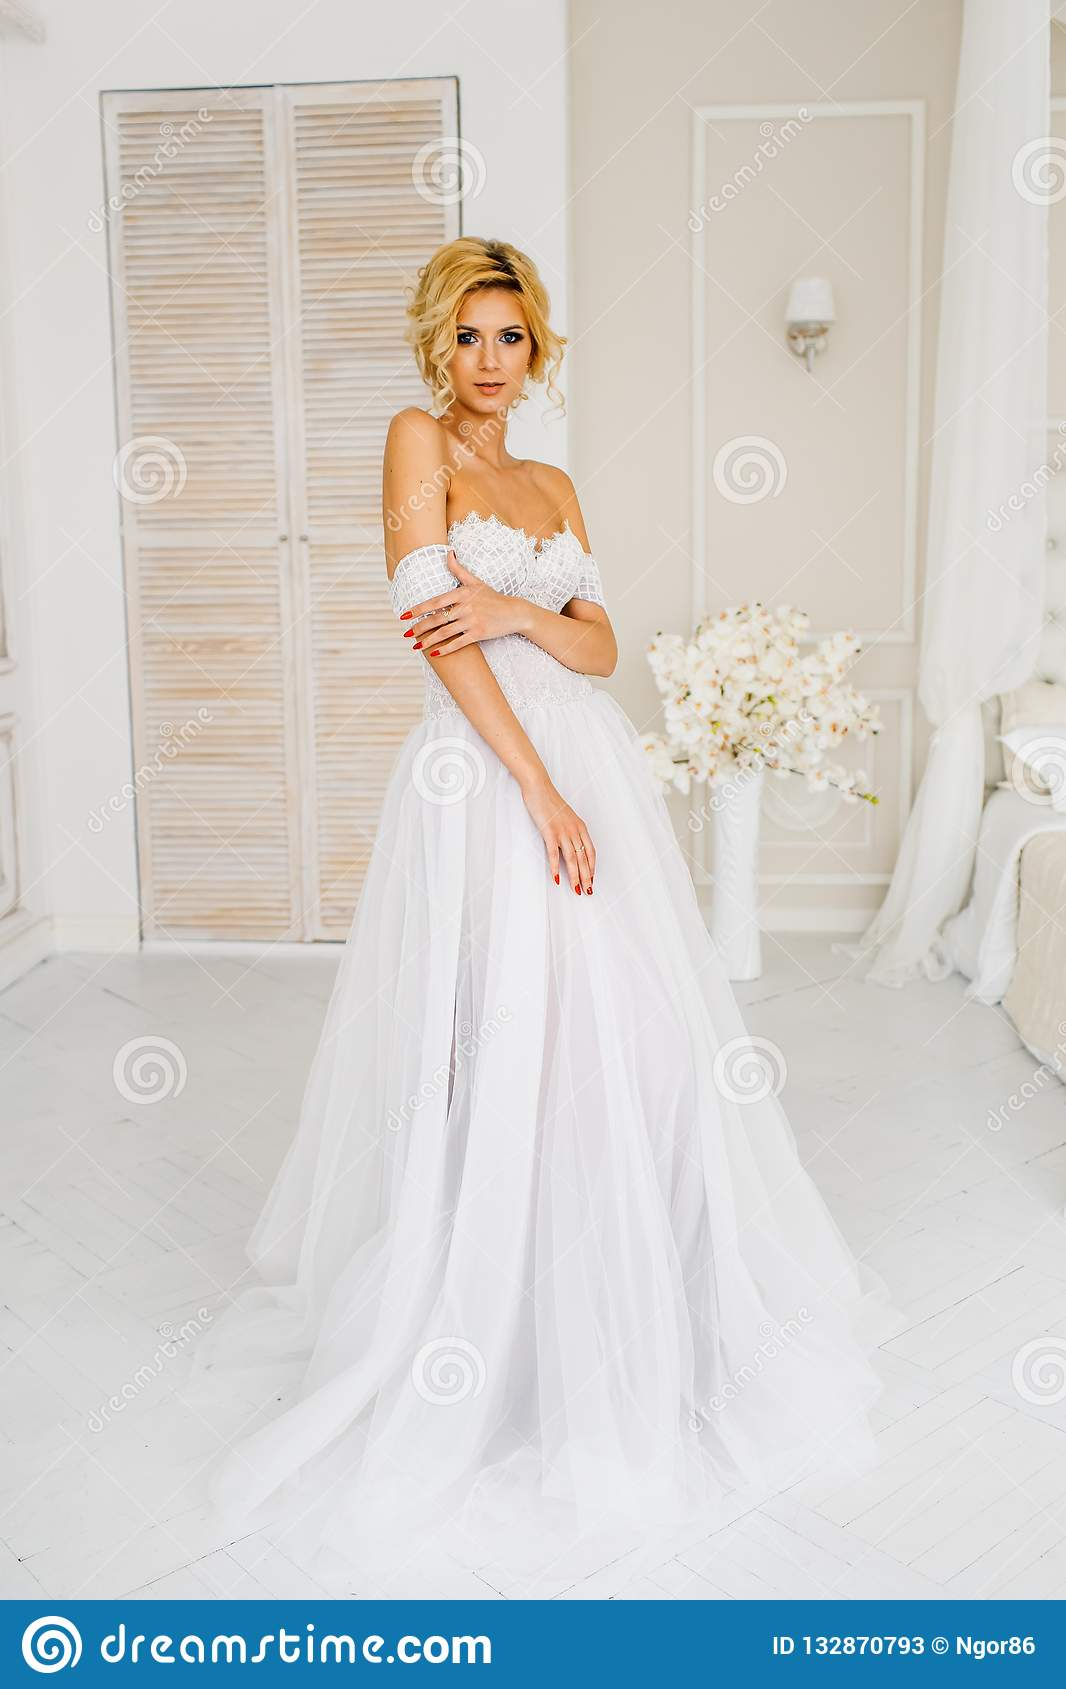 A Bride With Hairstyle And Make A Portrait Of Beautiful Girl With